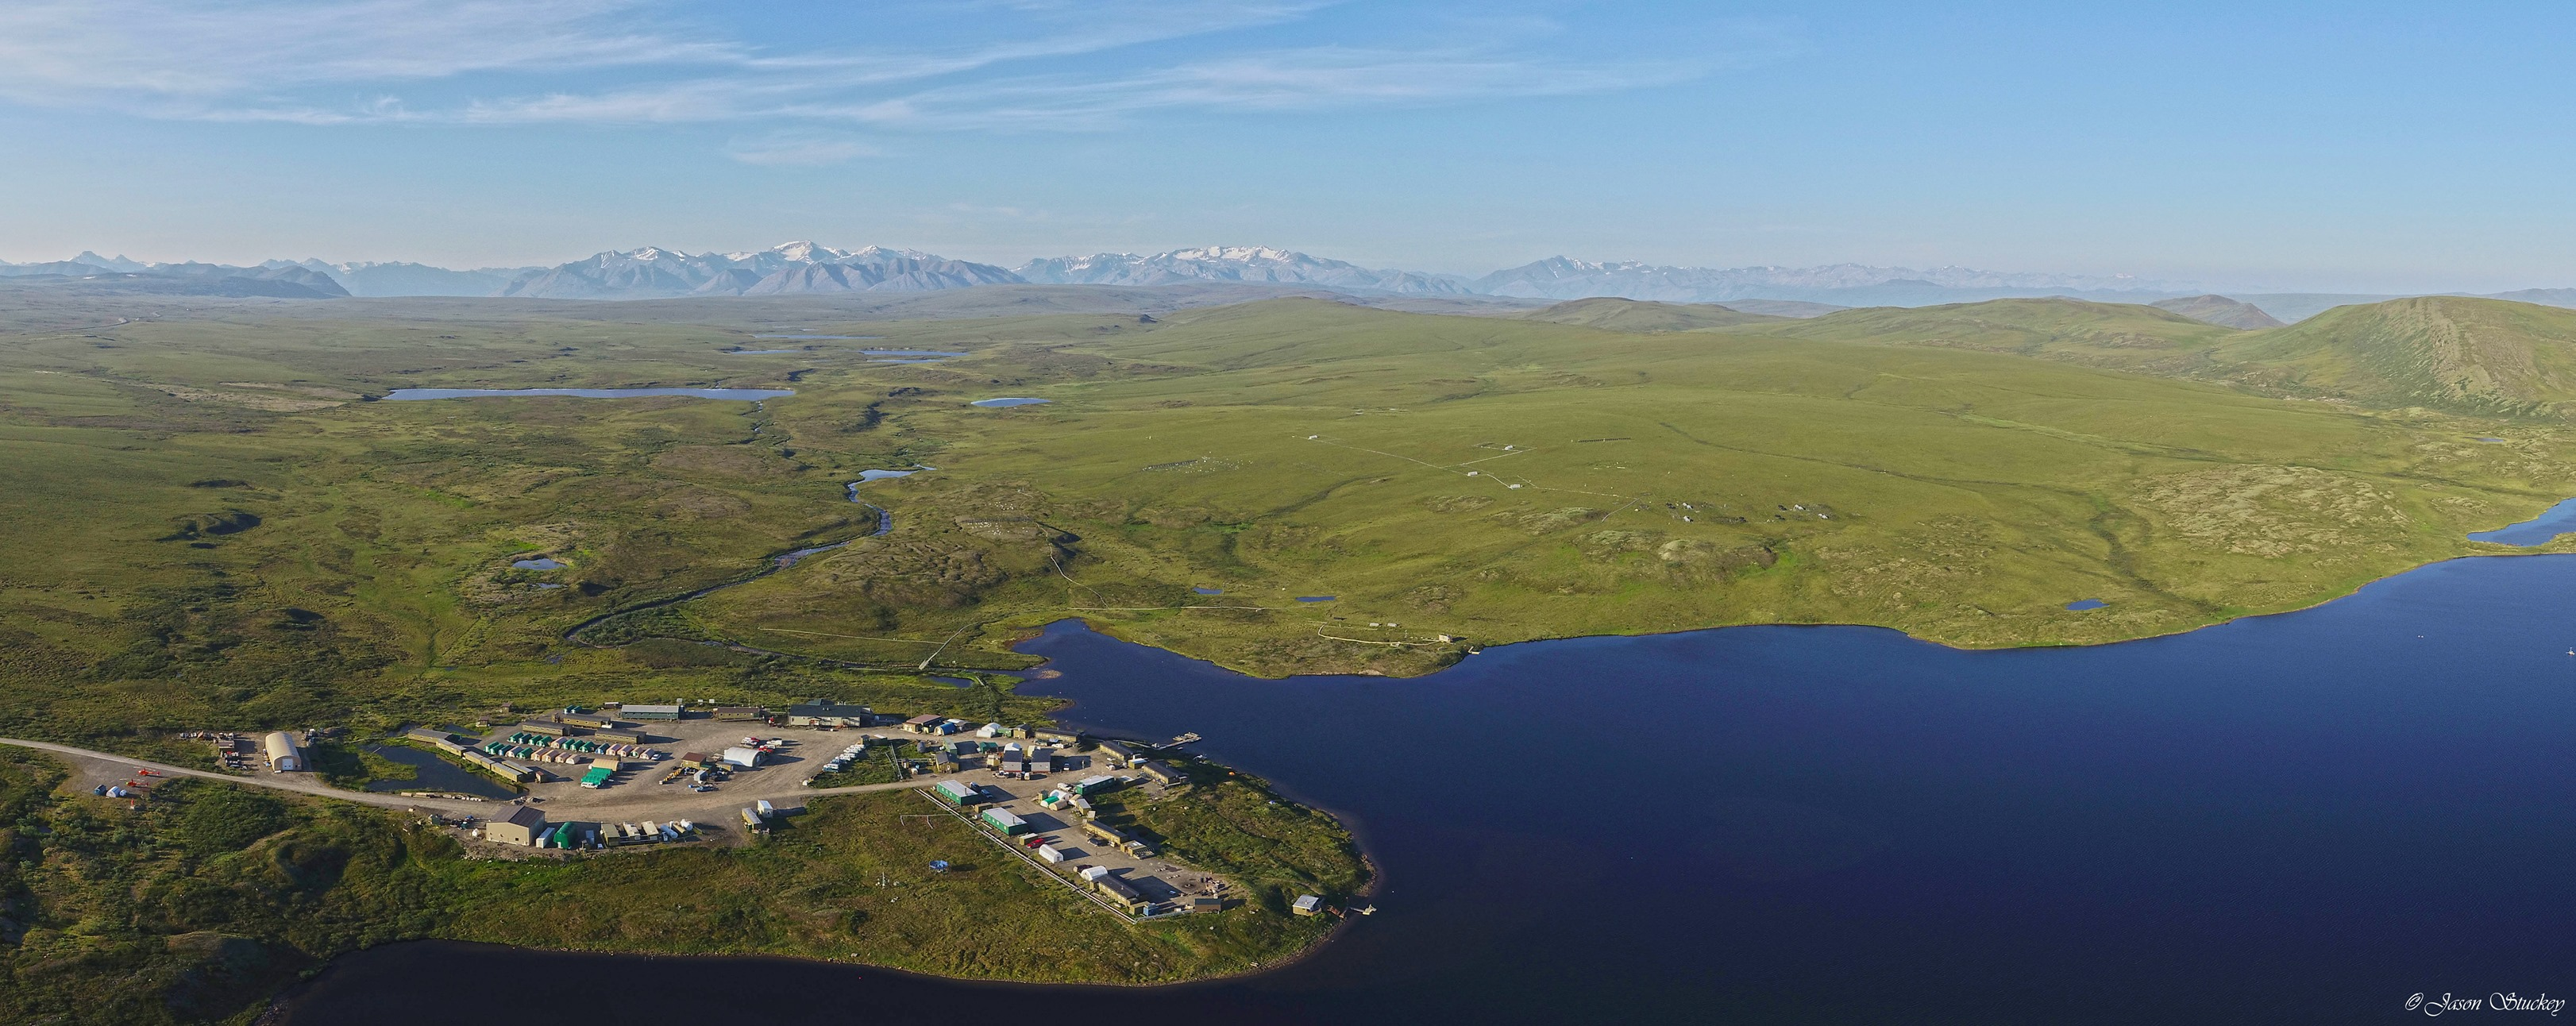 Image of the Toolik Field Station